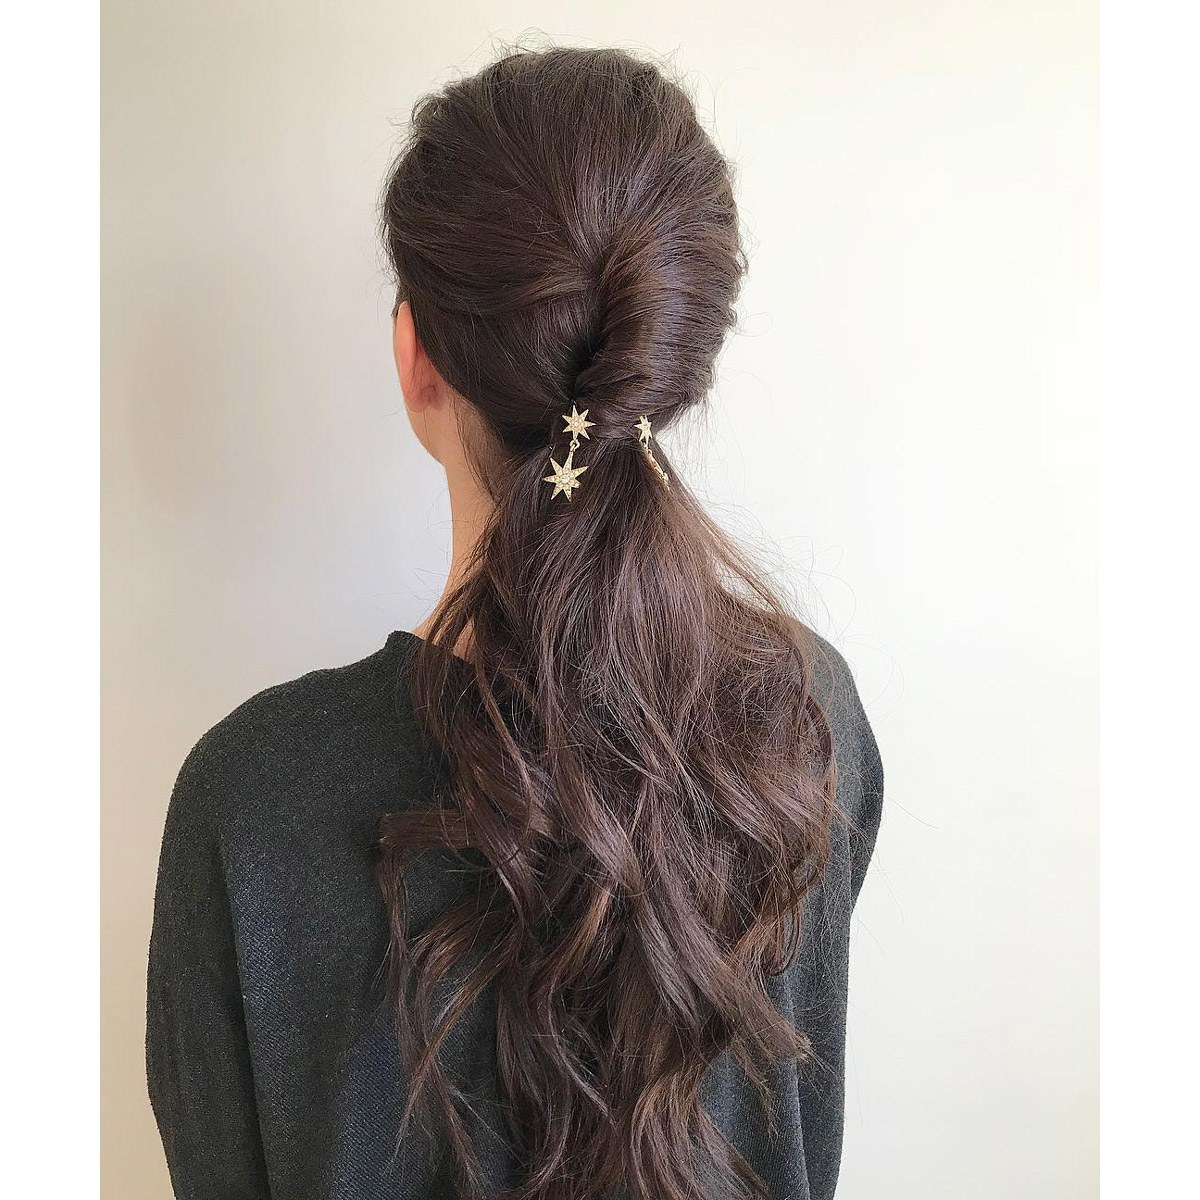 37 Cool Ponytail Hairstyles To Try In 2019 (Gallery 15 of 20)